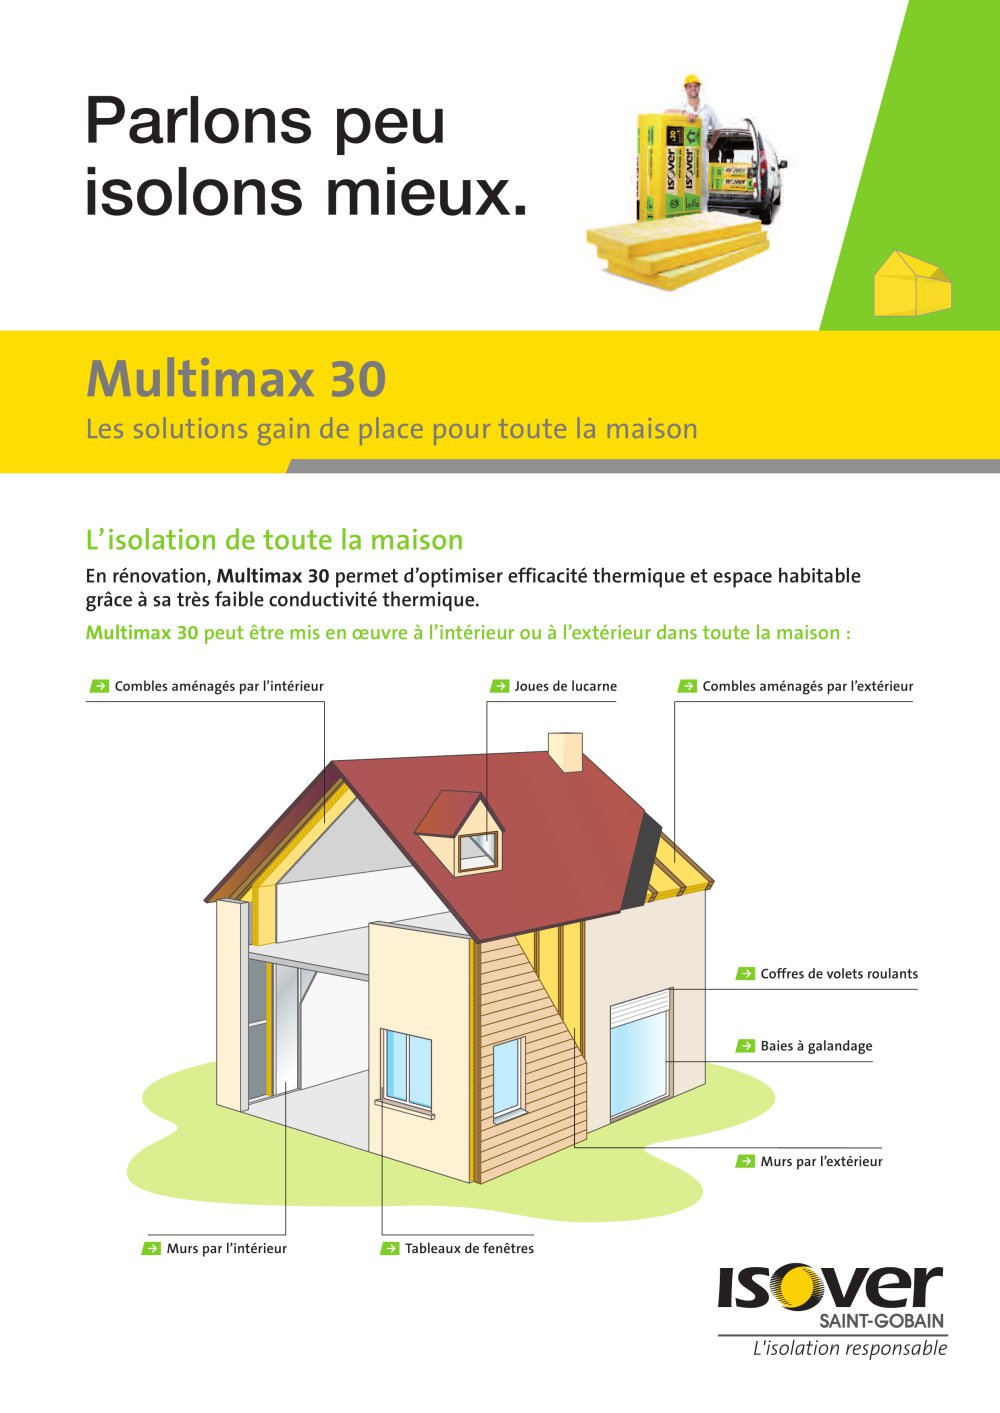 Isolation Exterieure Joue De Lucarne Multimax 30 Isover Saint Gobain Catalogue Pdf Documentation